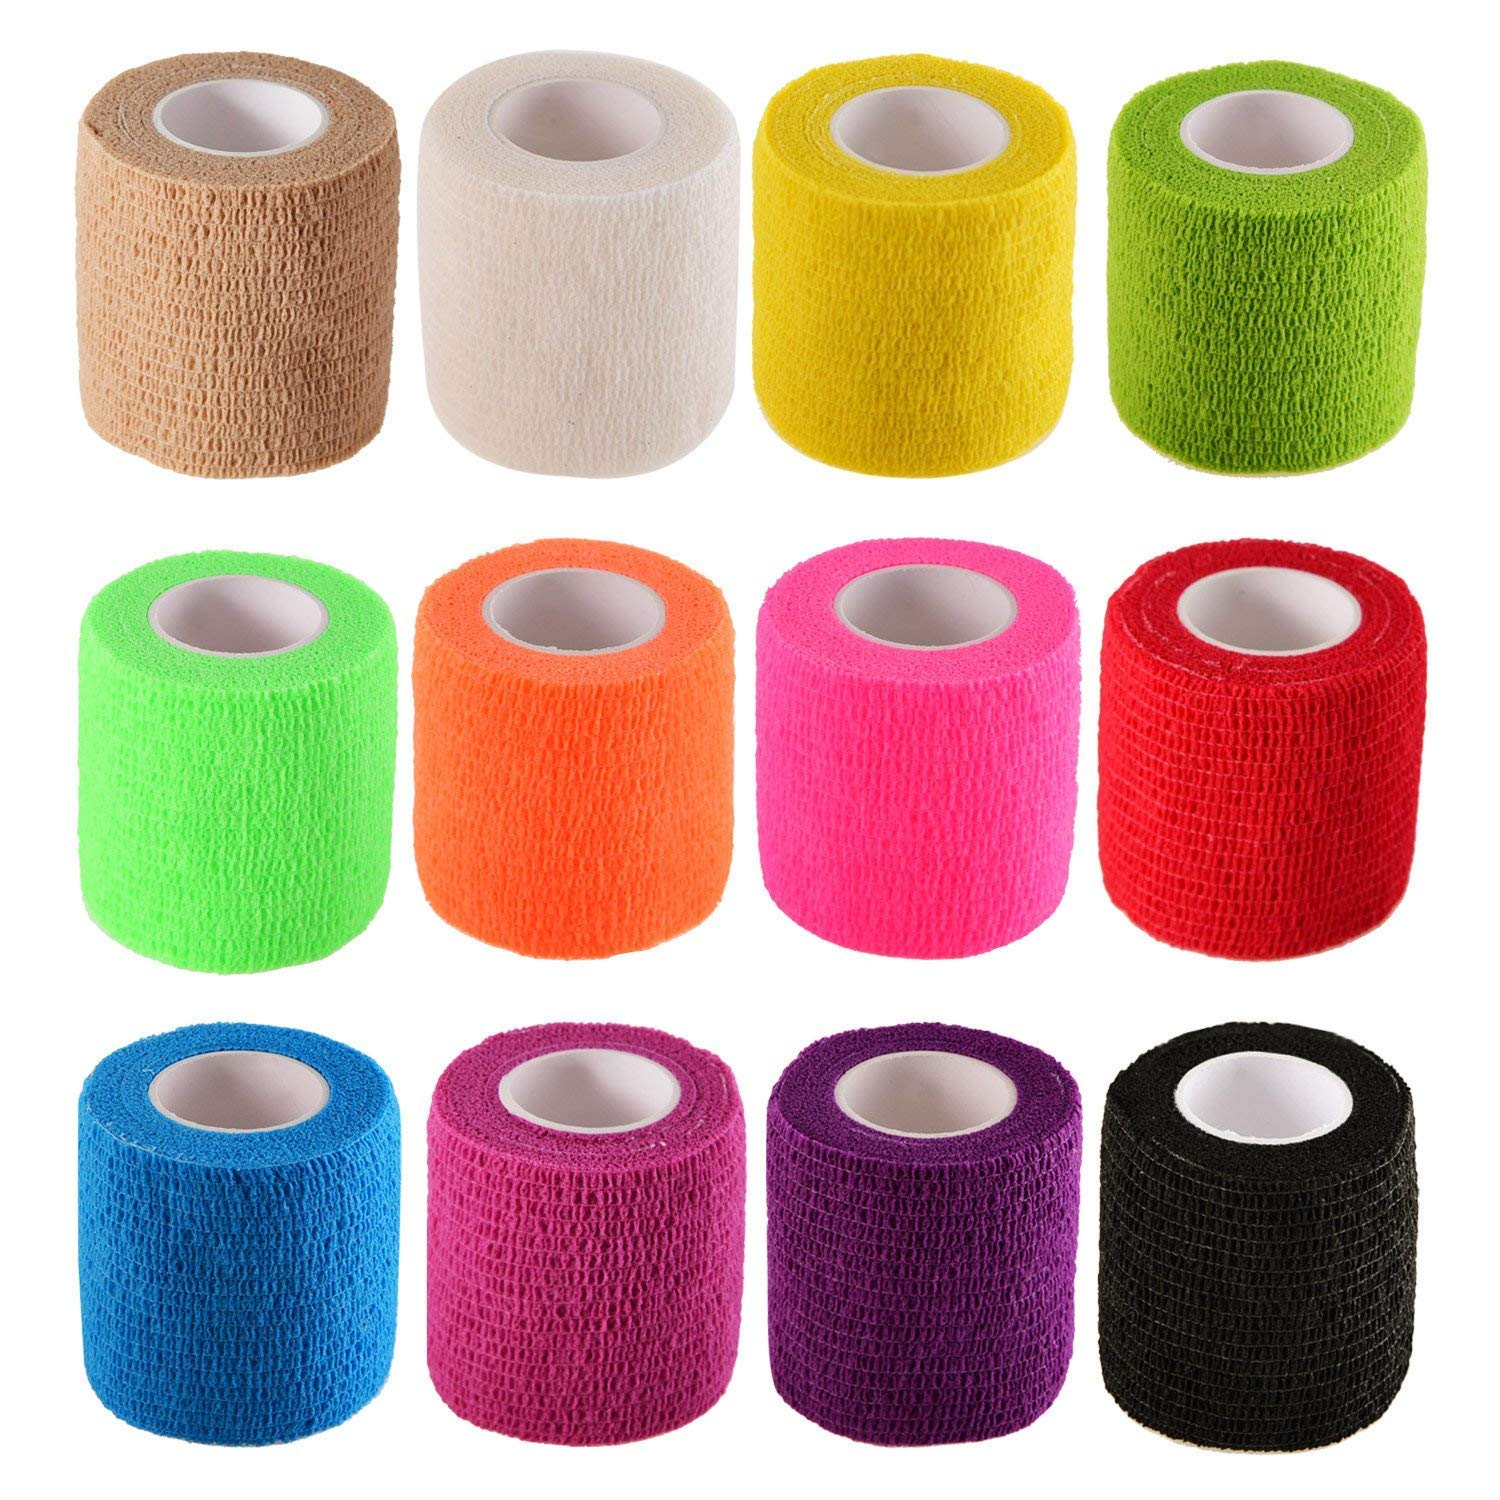 Pangda 12 Pieces Adhesive Bandage Wrap Stretch Self-Adherent Tape for Sports, Wrist, Ankle, 5 Yards Each (12 Colors, 2 Inches) by Splendid Mart